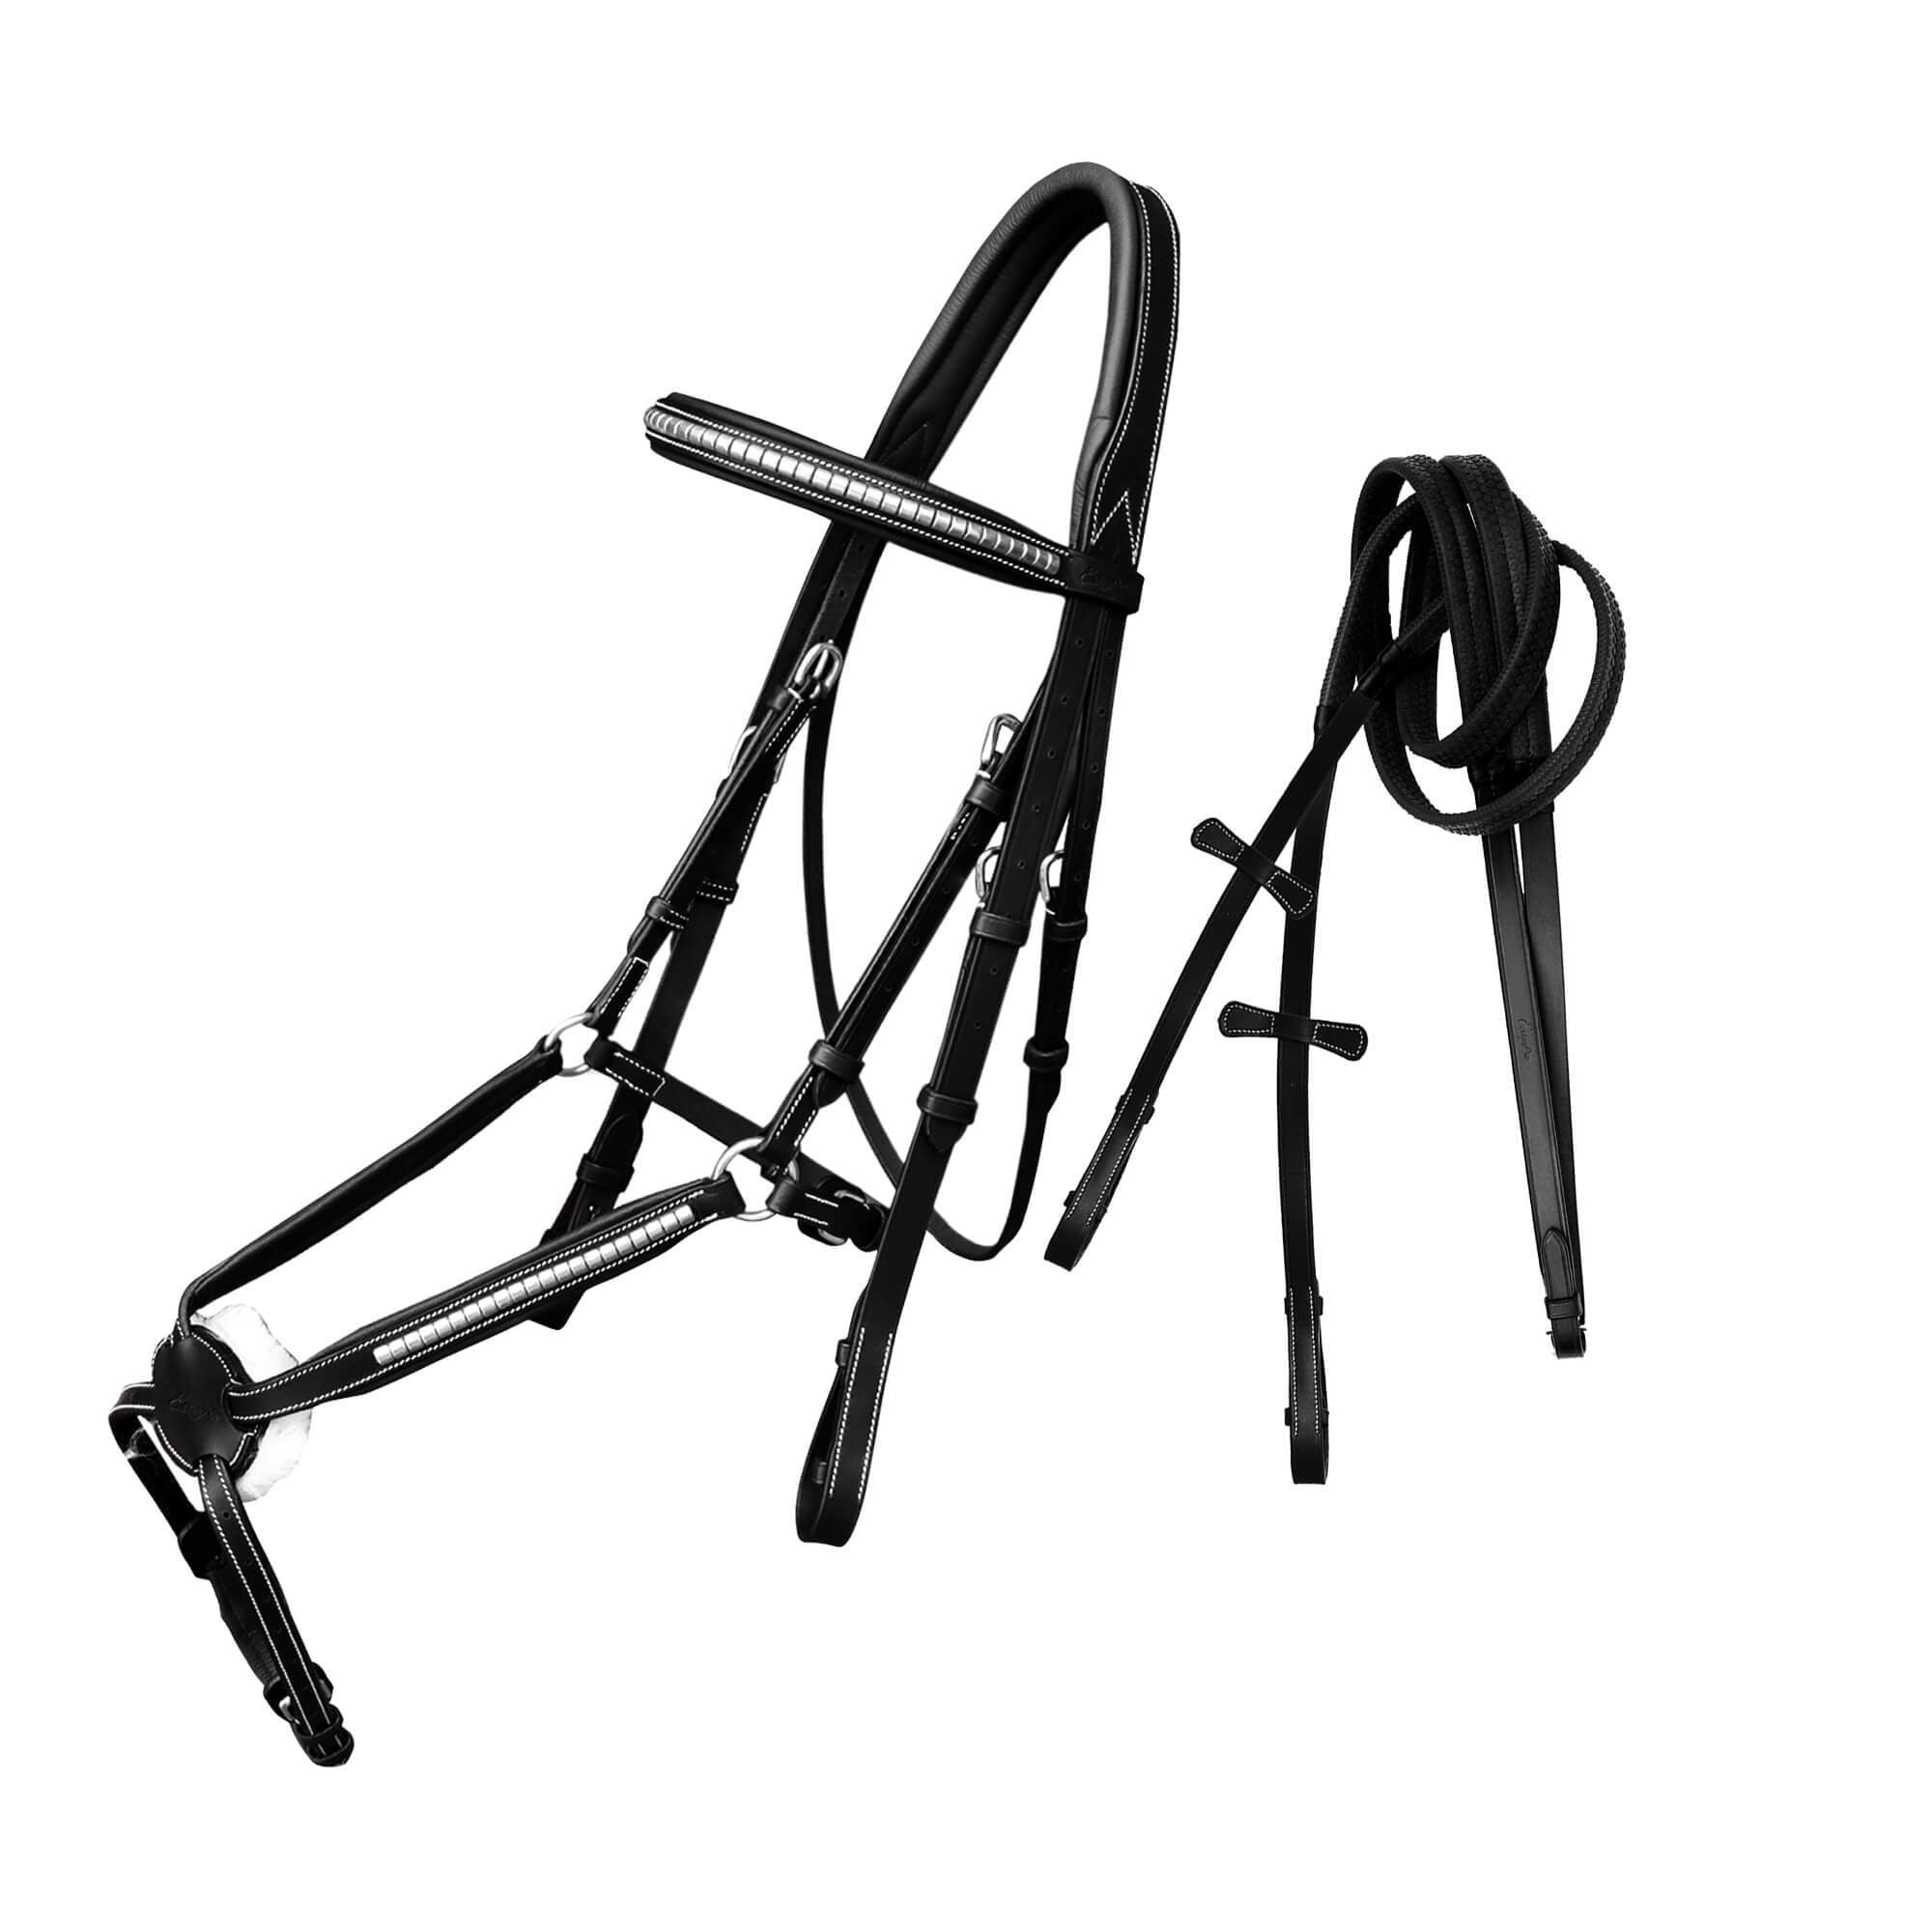 ExionPro SS Clincher Figure 8 Bridle with Rubber Reins-Bridles & Reins